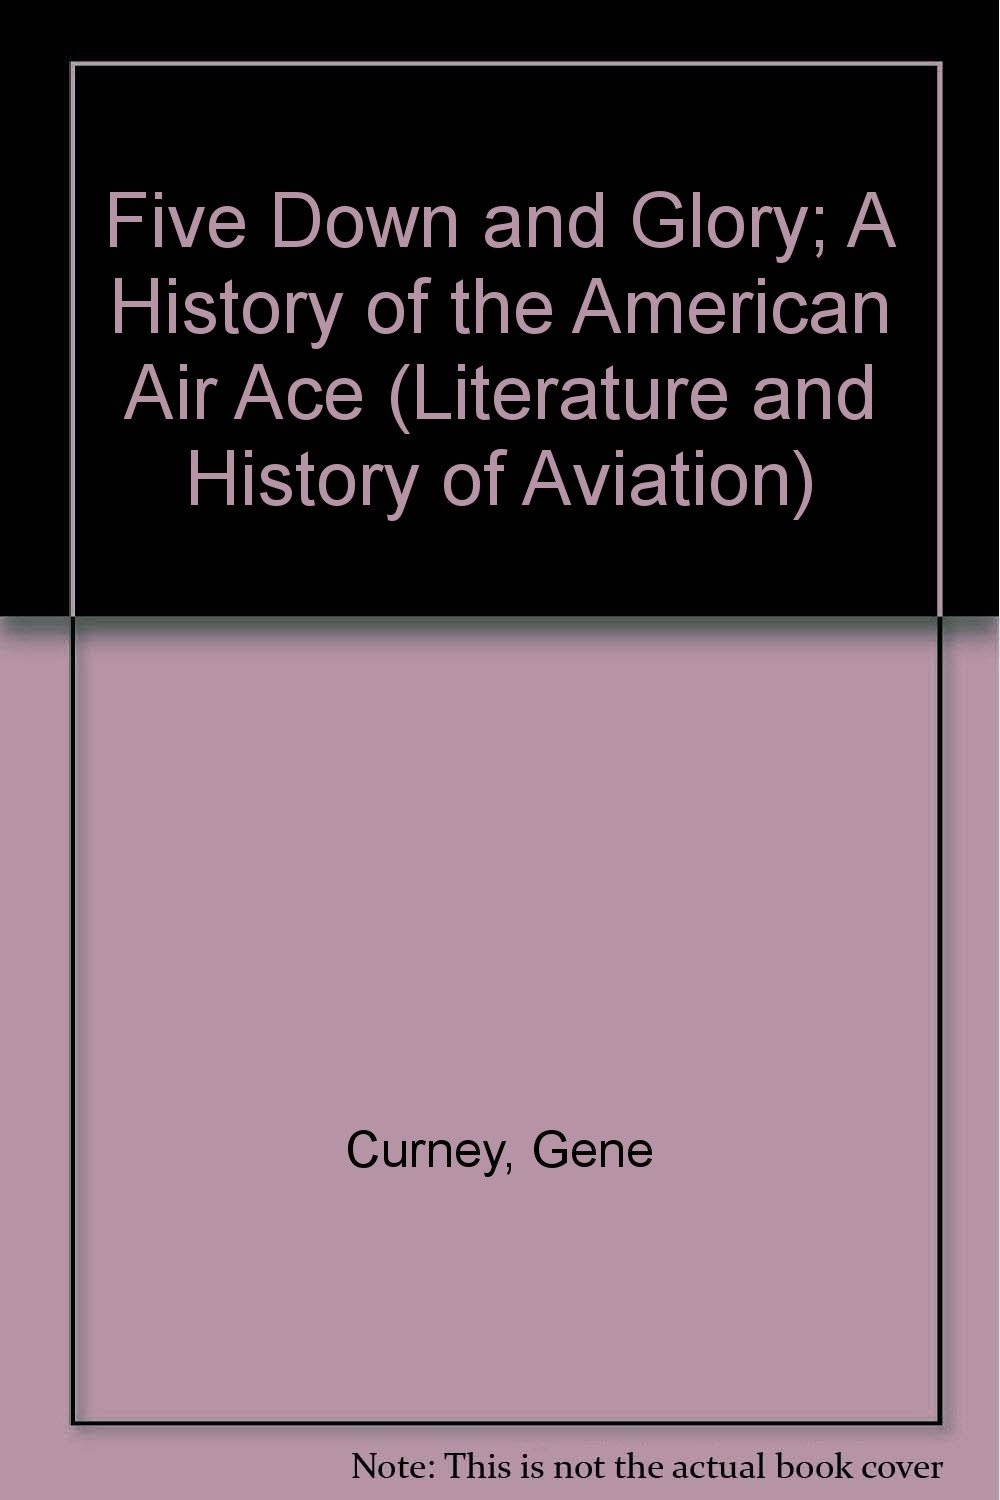 Five Down and Glory; A History of the American Air Ace (Literature and History of Aviation)